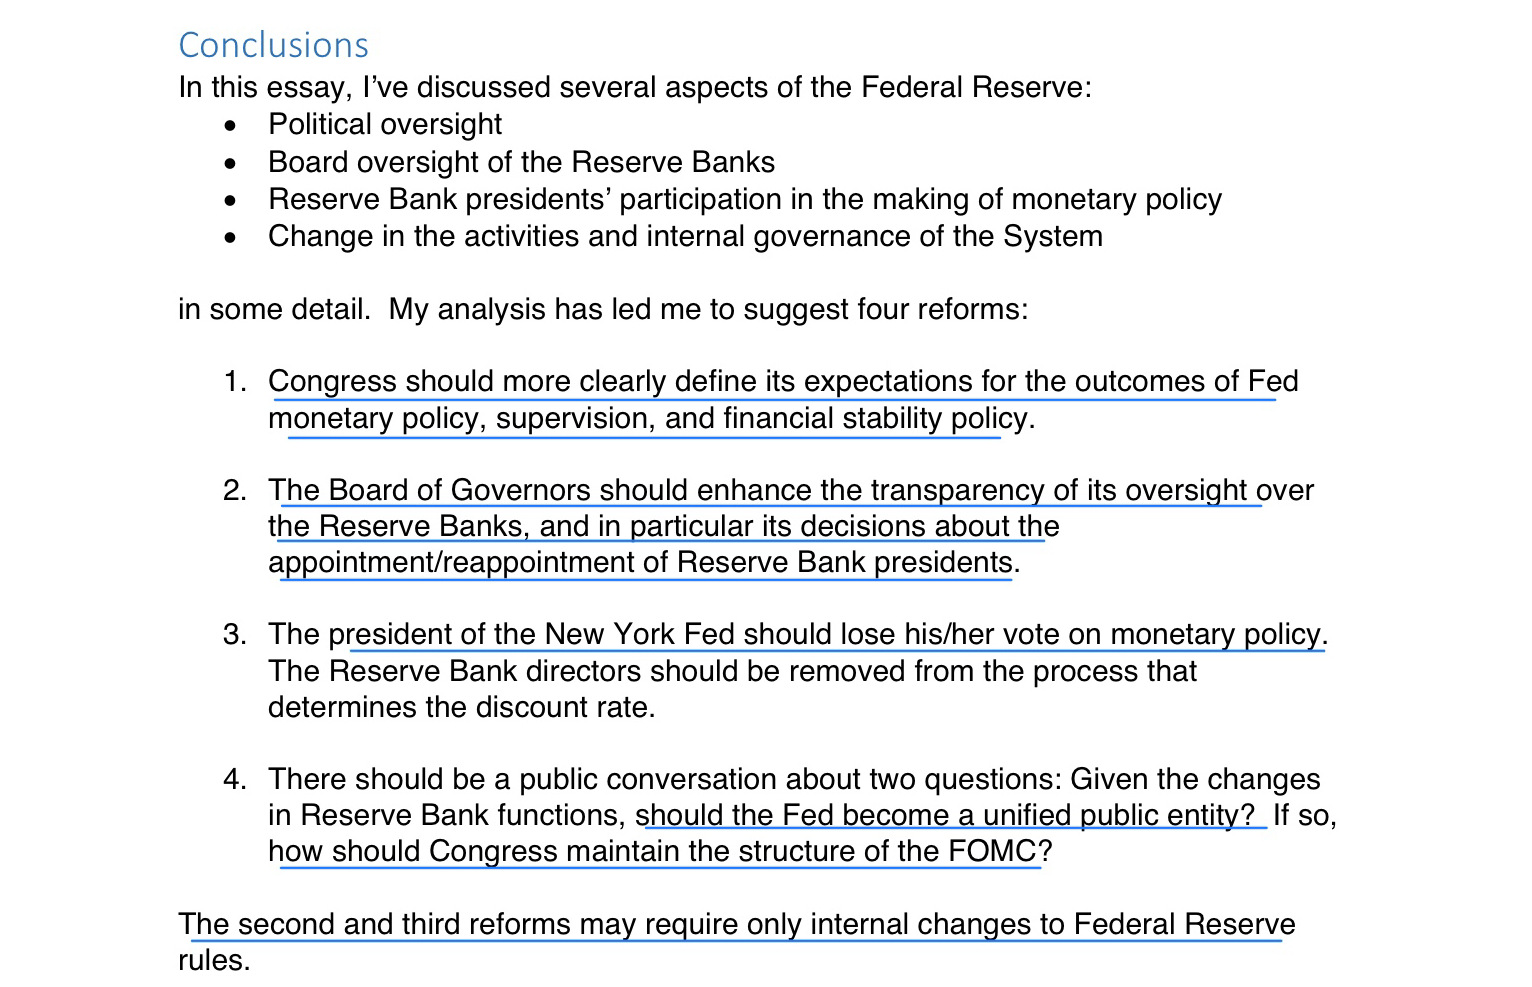 kocherlakota on how to reform the federal reserve system conclusion of the decentralized central bank a review essay on the power and independence